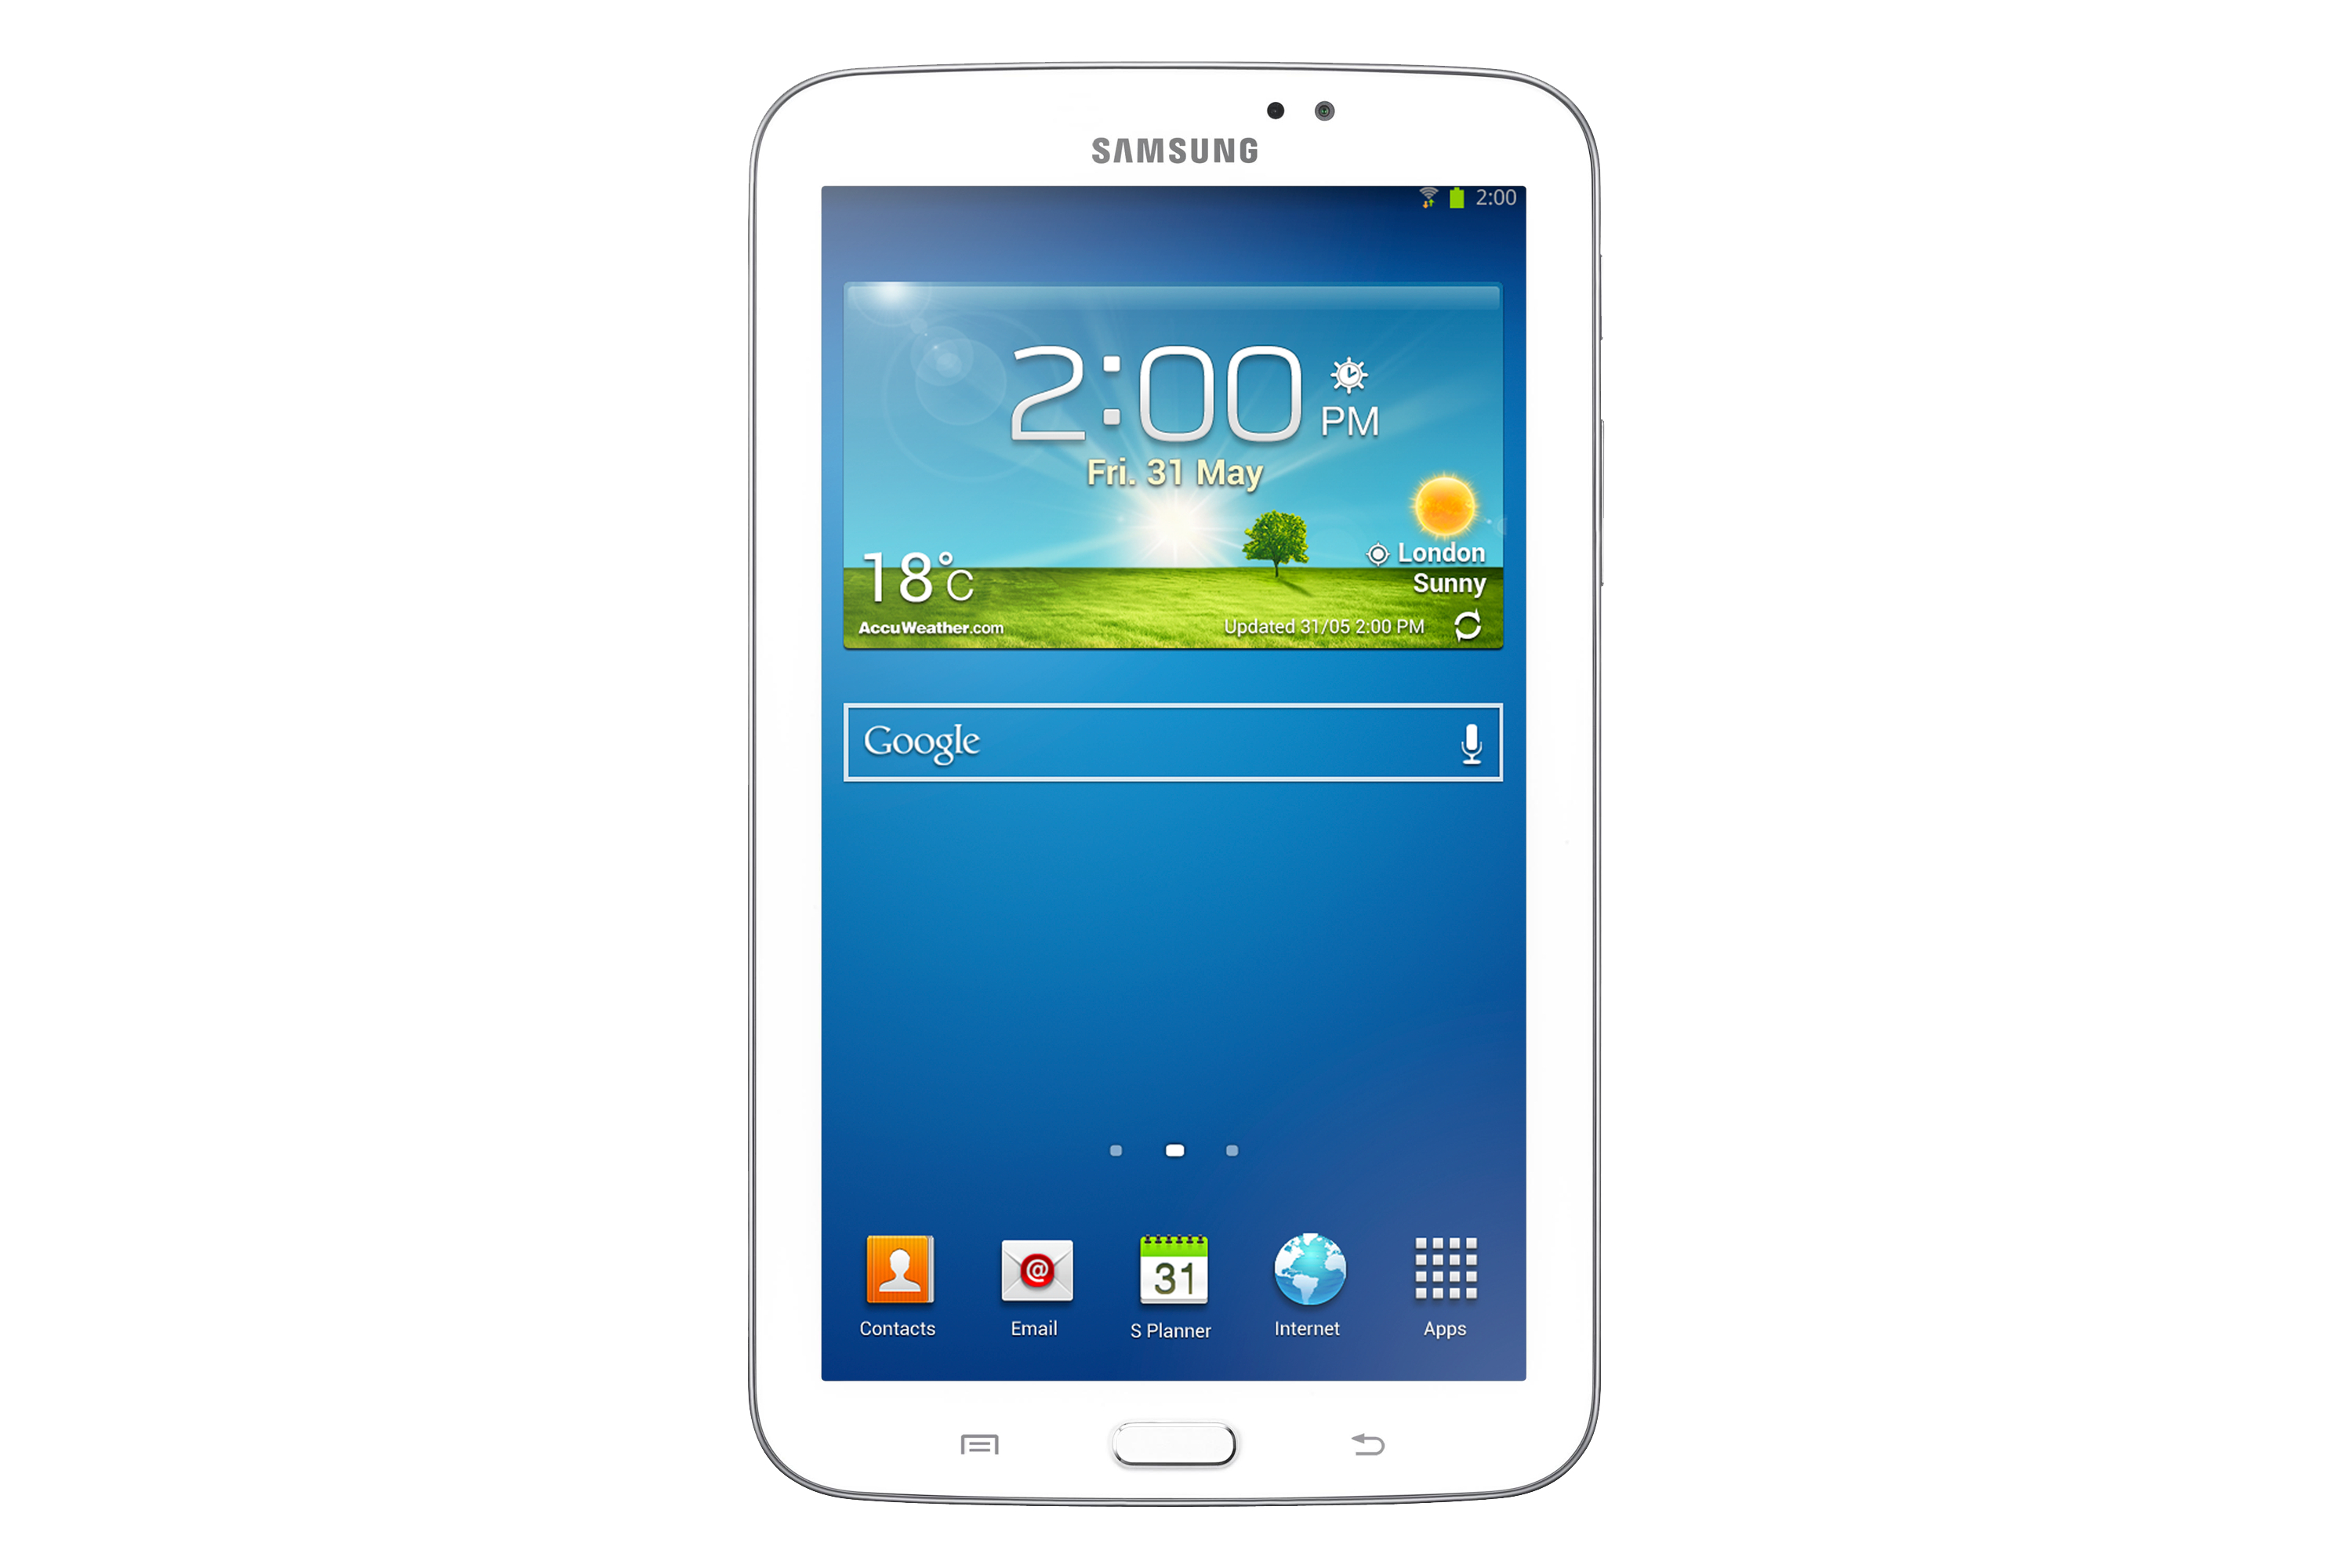 samsung sm t210 galaxy tab 3 8gb 7 1gb android 4. Black Bedroom Furniture Sets. Home Design Ideas